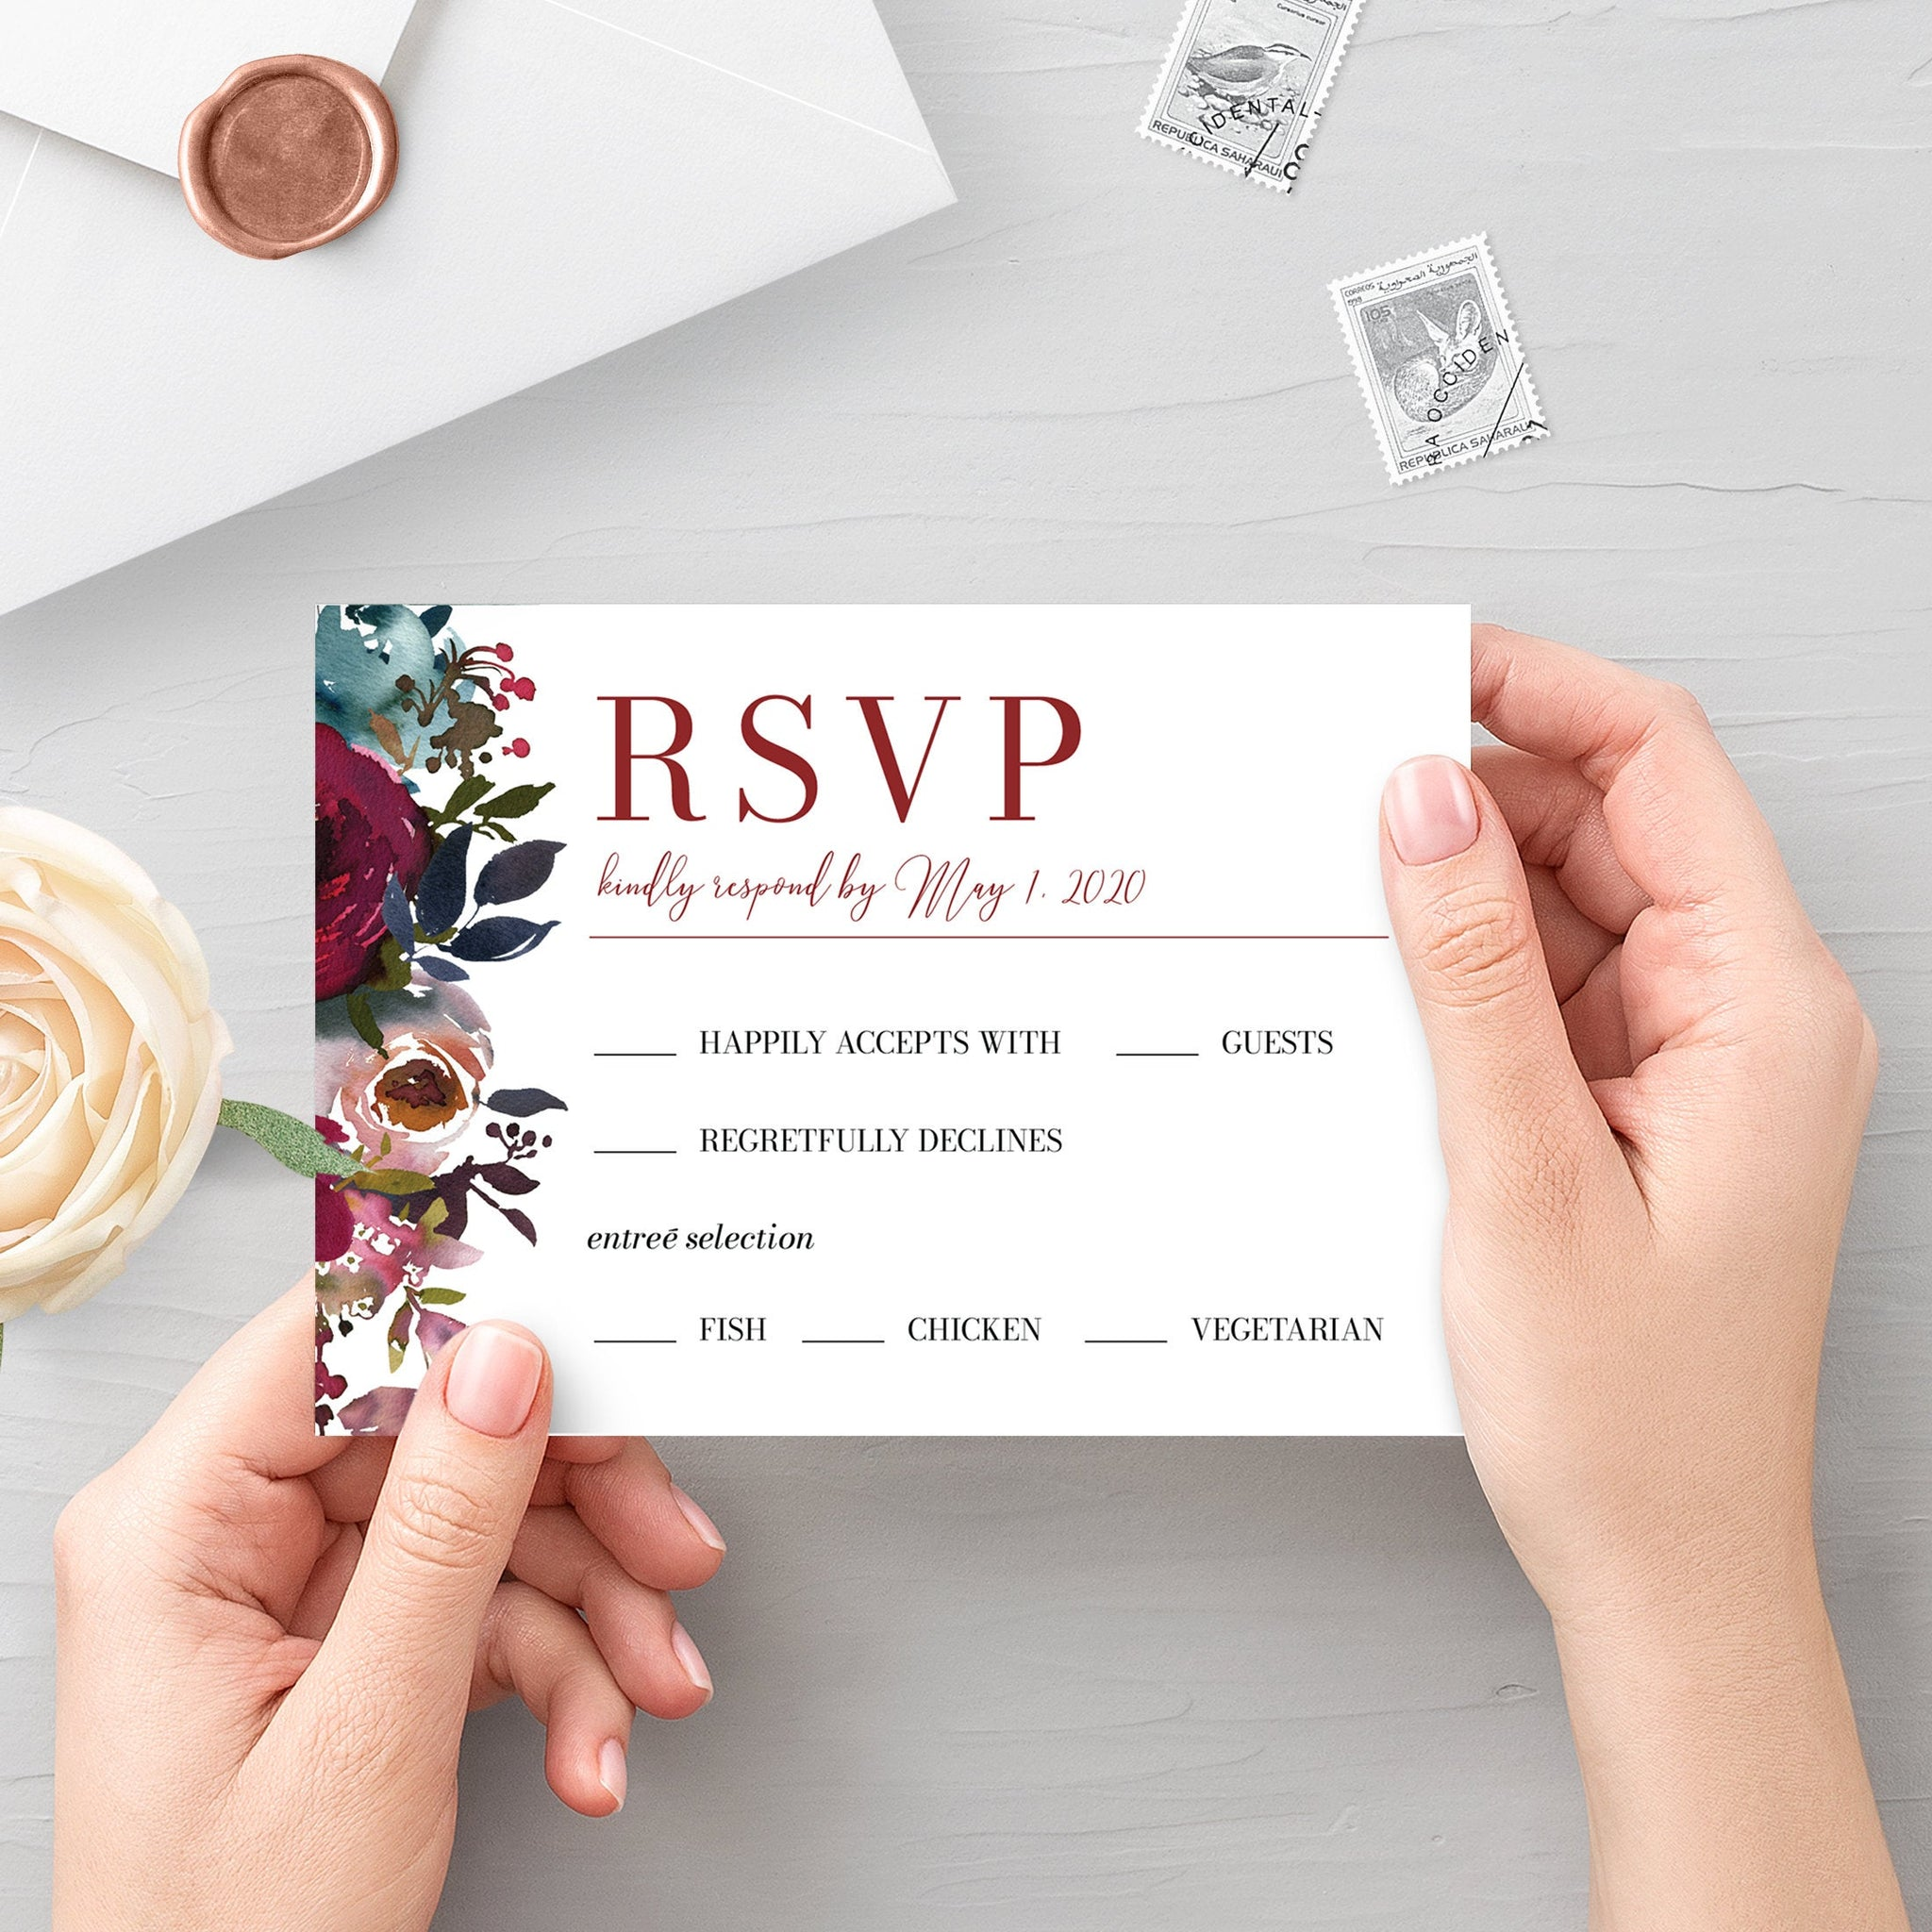 Burgundy and Navy Wedding Invitation Template, Printable Wedding Invitation Suite, Editable Wedding Invitation, DIGITAL DOWNLOAD - BB100 - @PlumPolkaDot